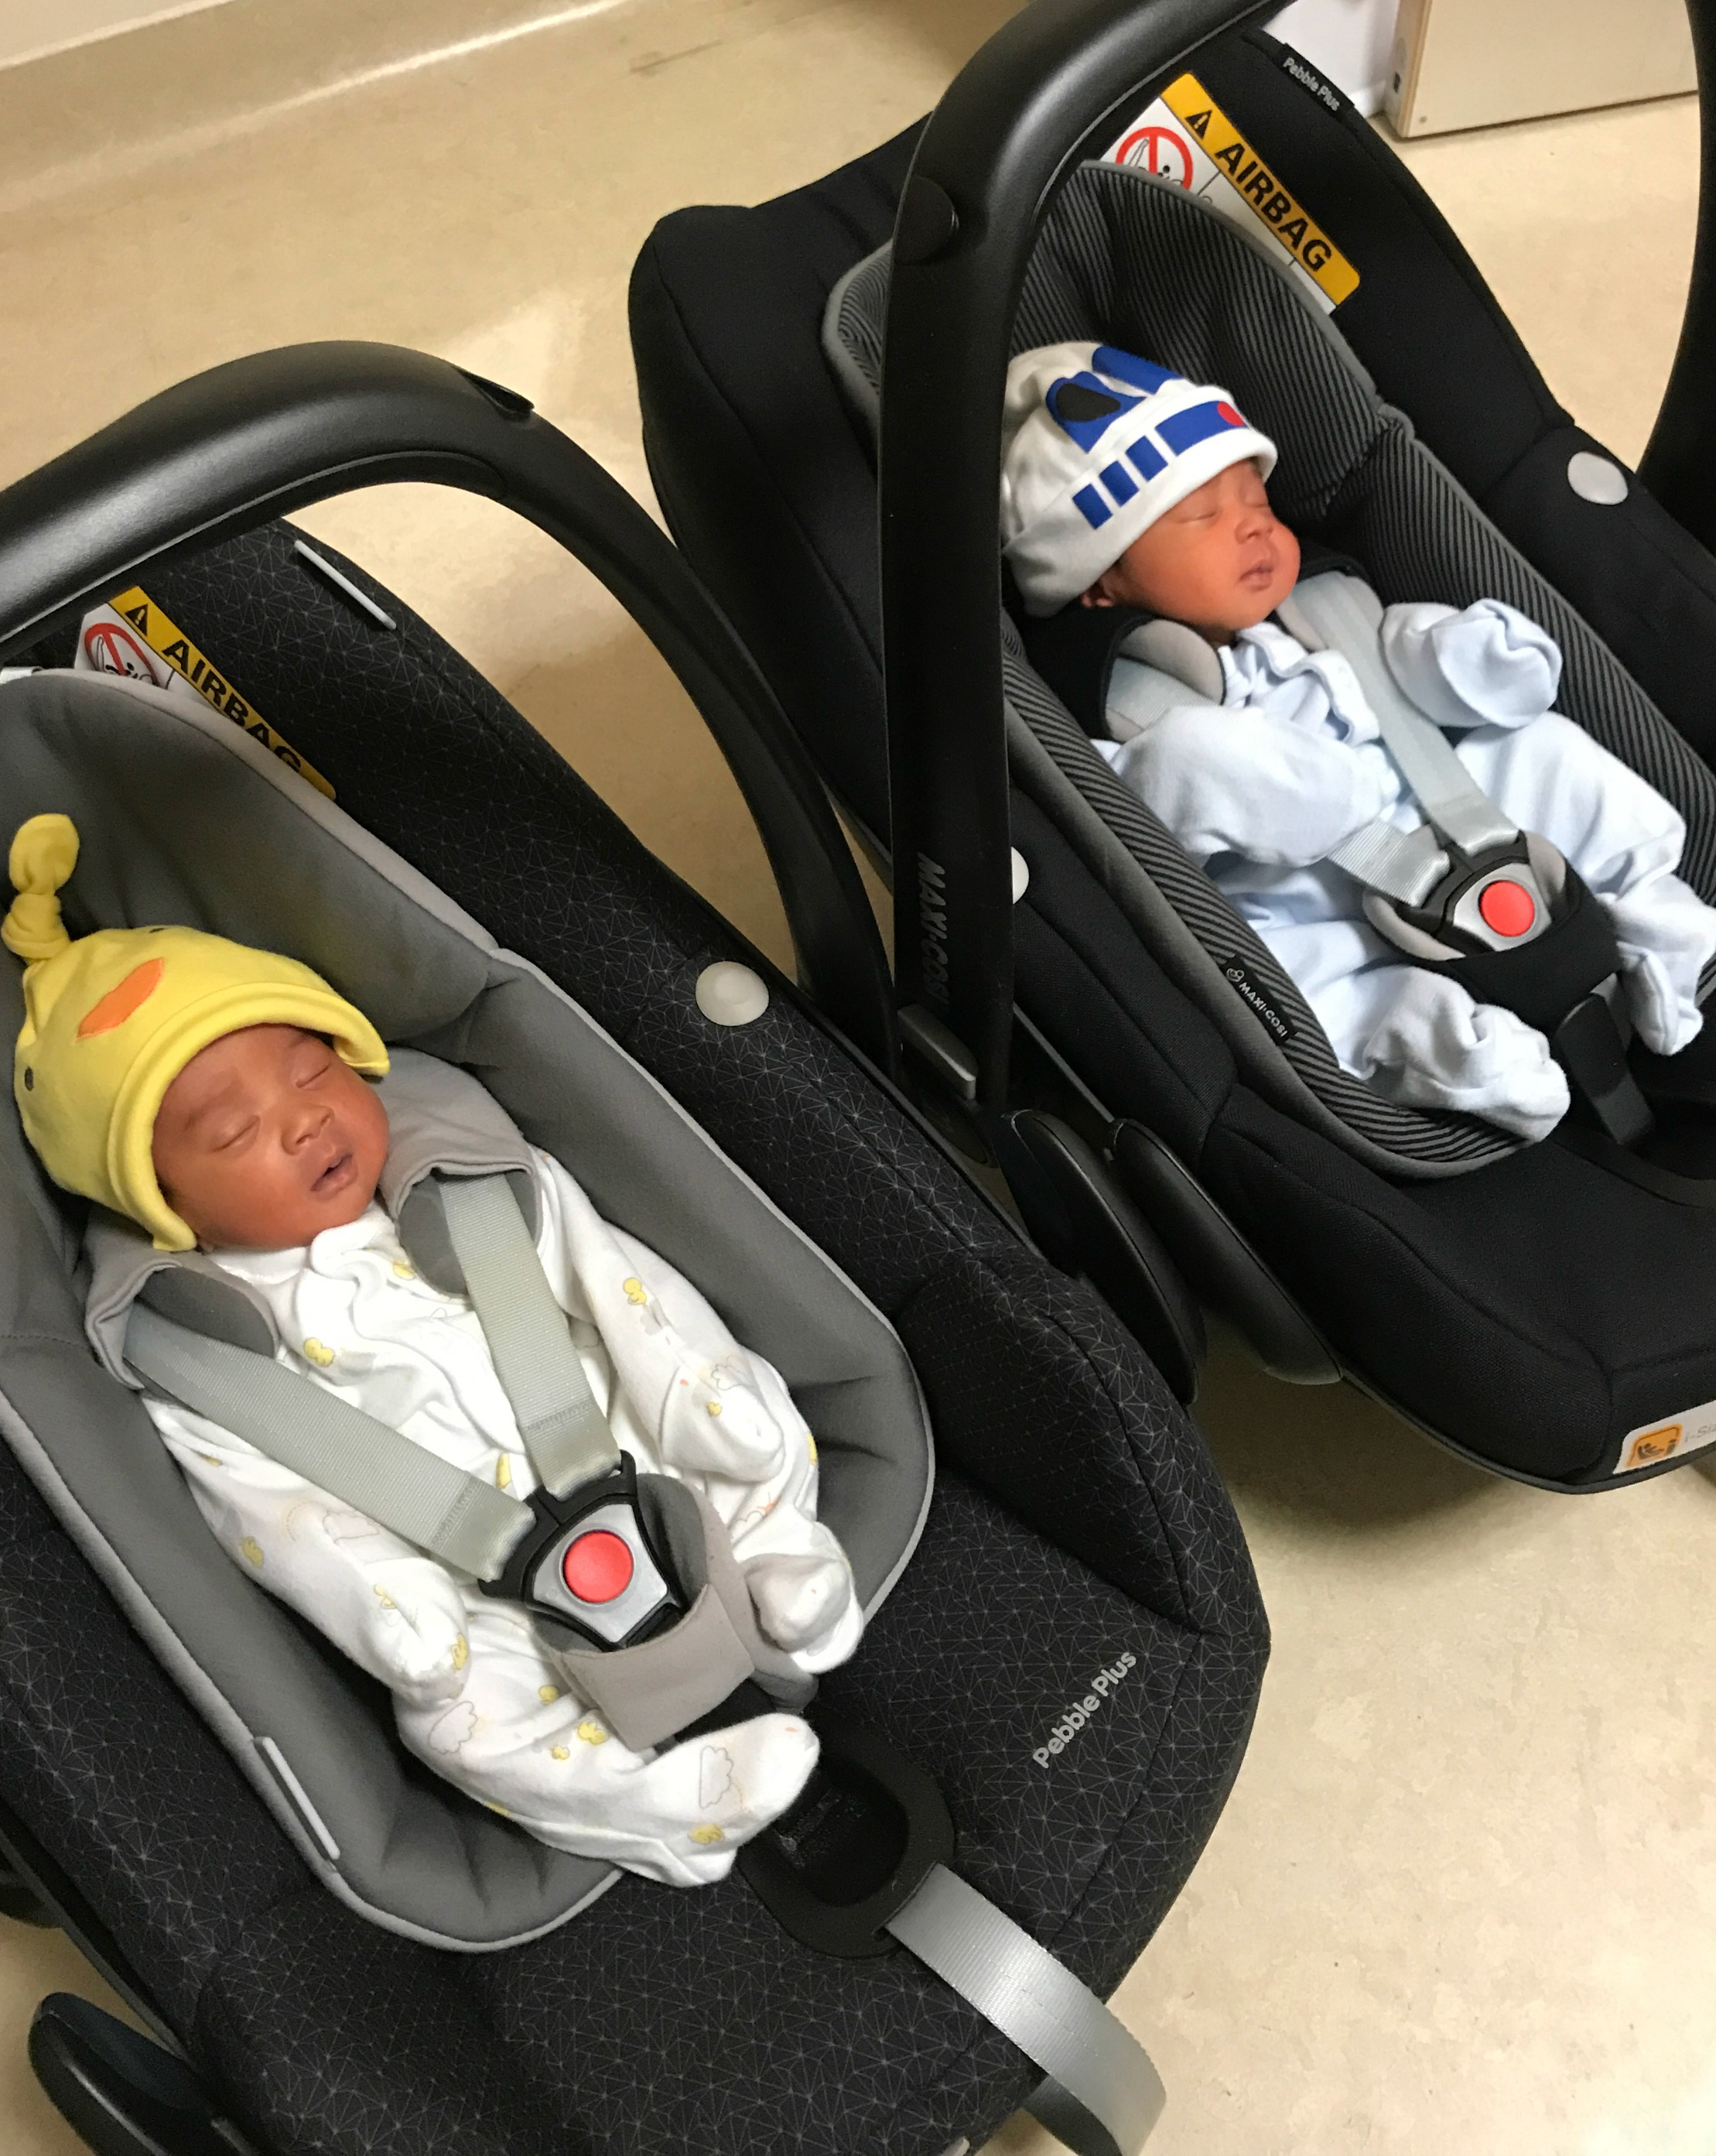 Twins in Maxi Cosi car seats - new baby twin essentials